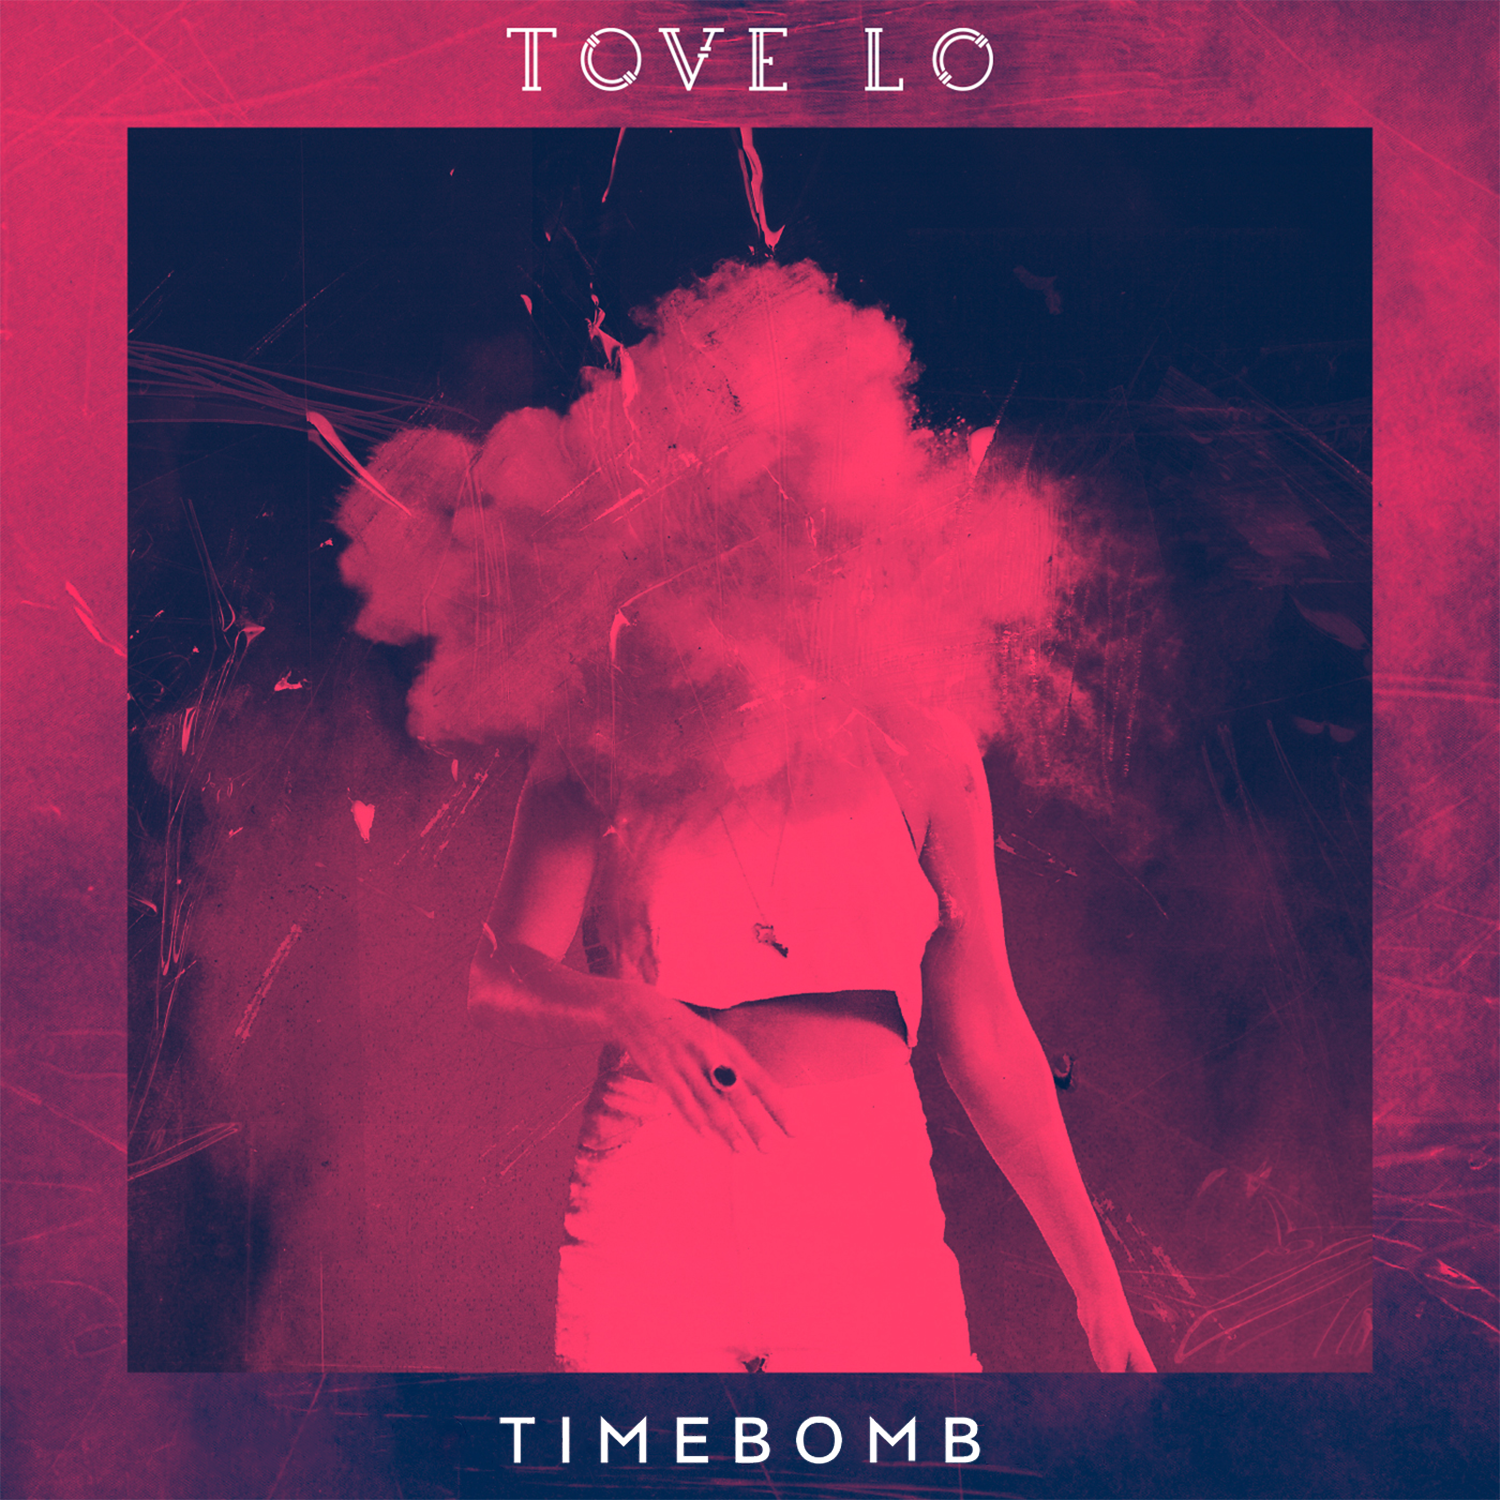 Tove lo queen of the clouds album cover